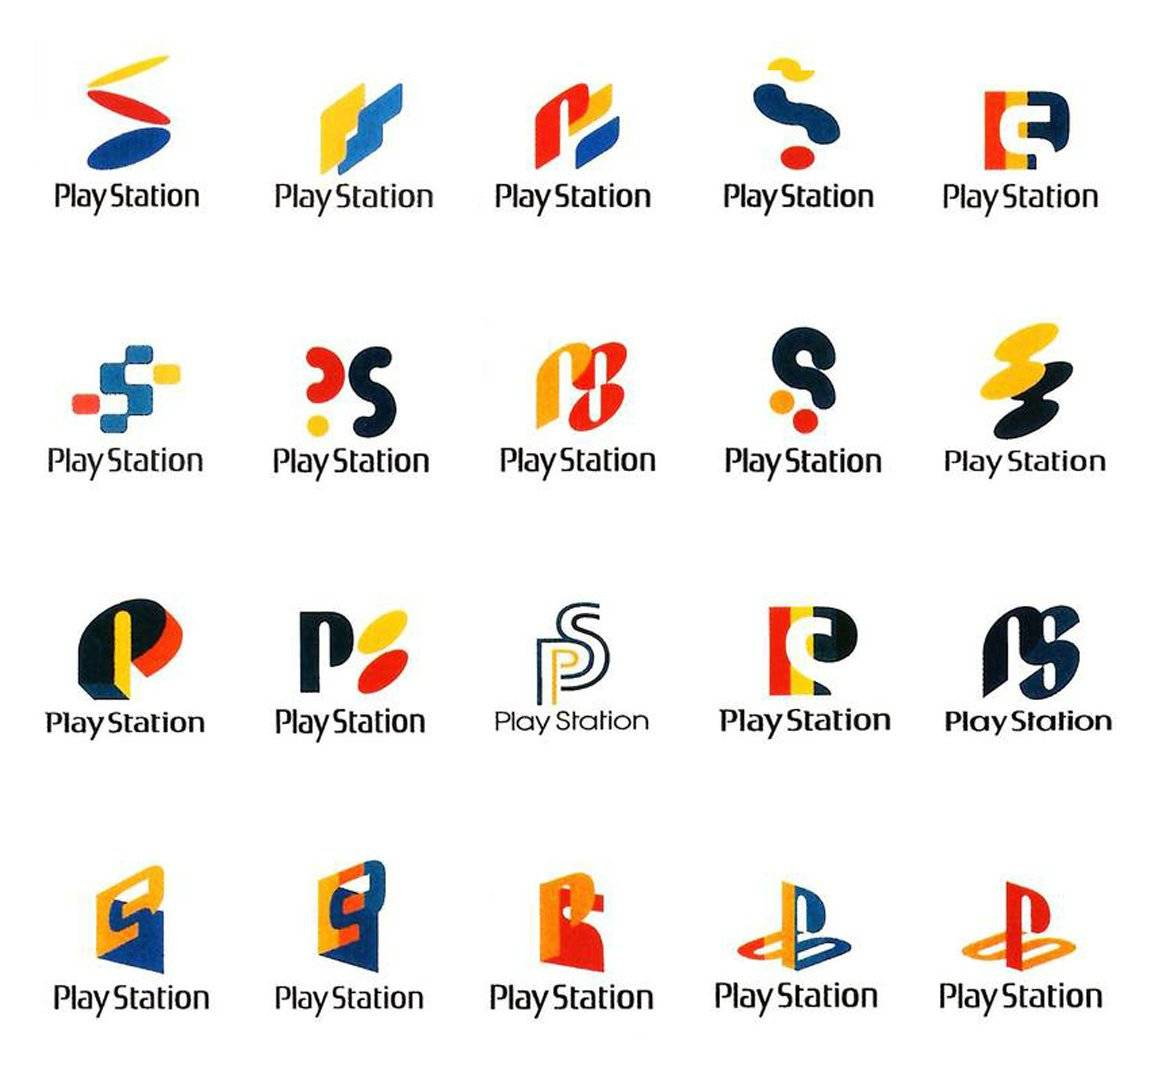 Logo Design Ideas best 25 logo design ideas on pinterest logo inspiration logos and logo desing Sony Playstation 1 Logo Design Ideas And Concepts